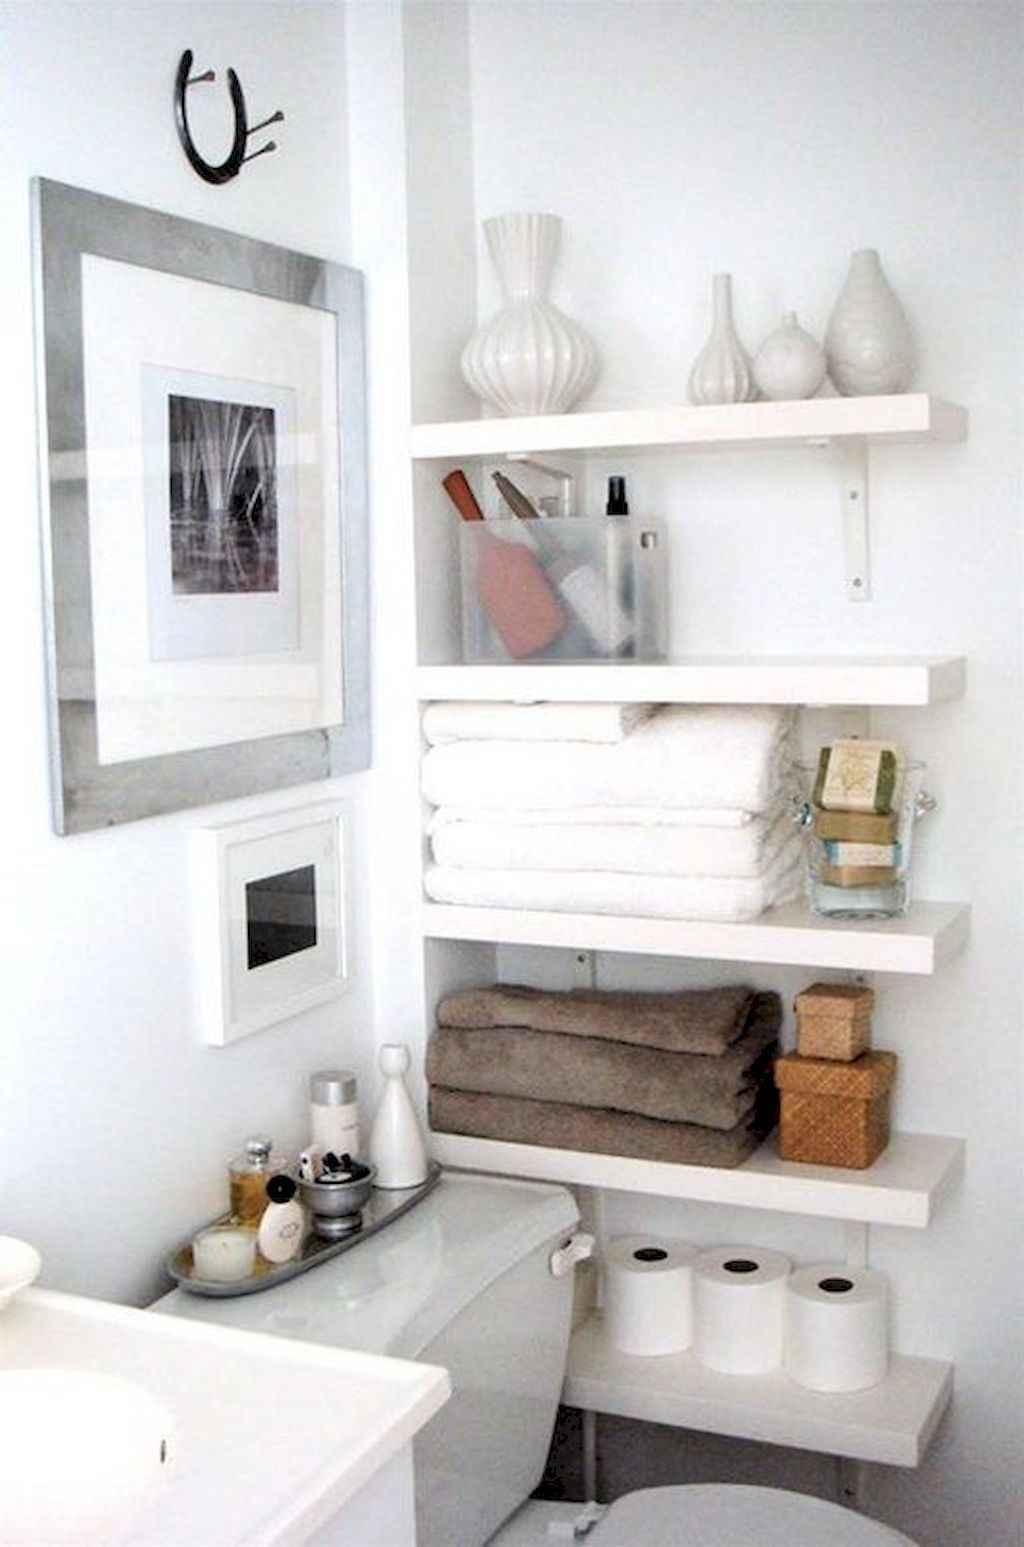 111 awesome small bathroom remodel ideas on a budget (35)